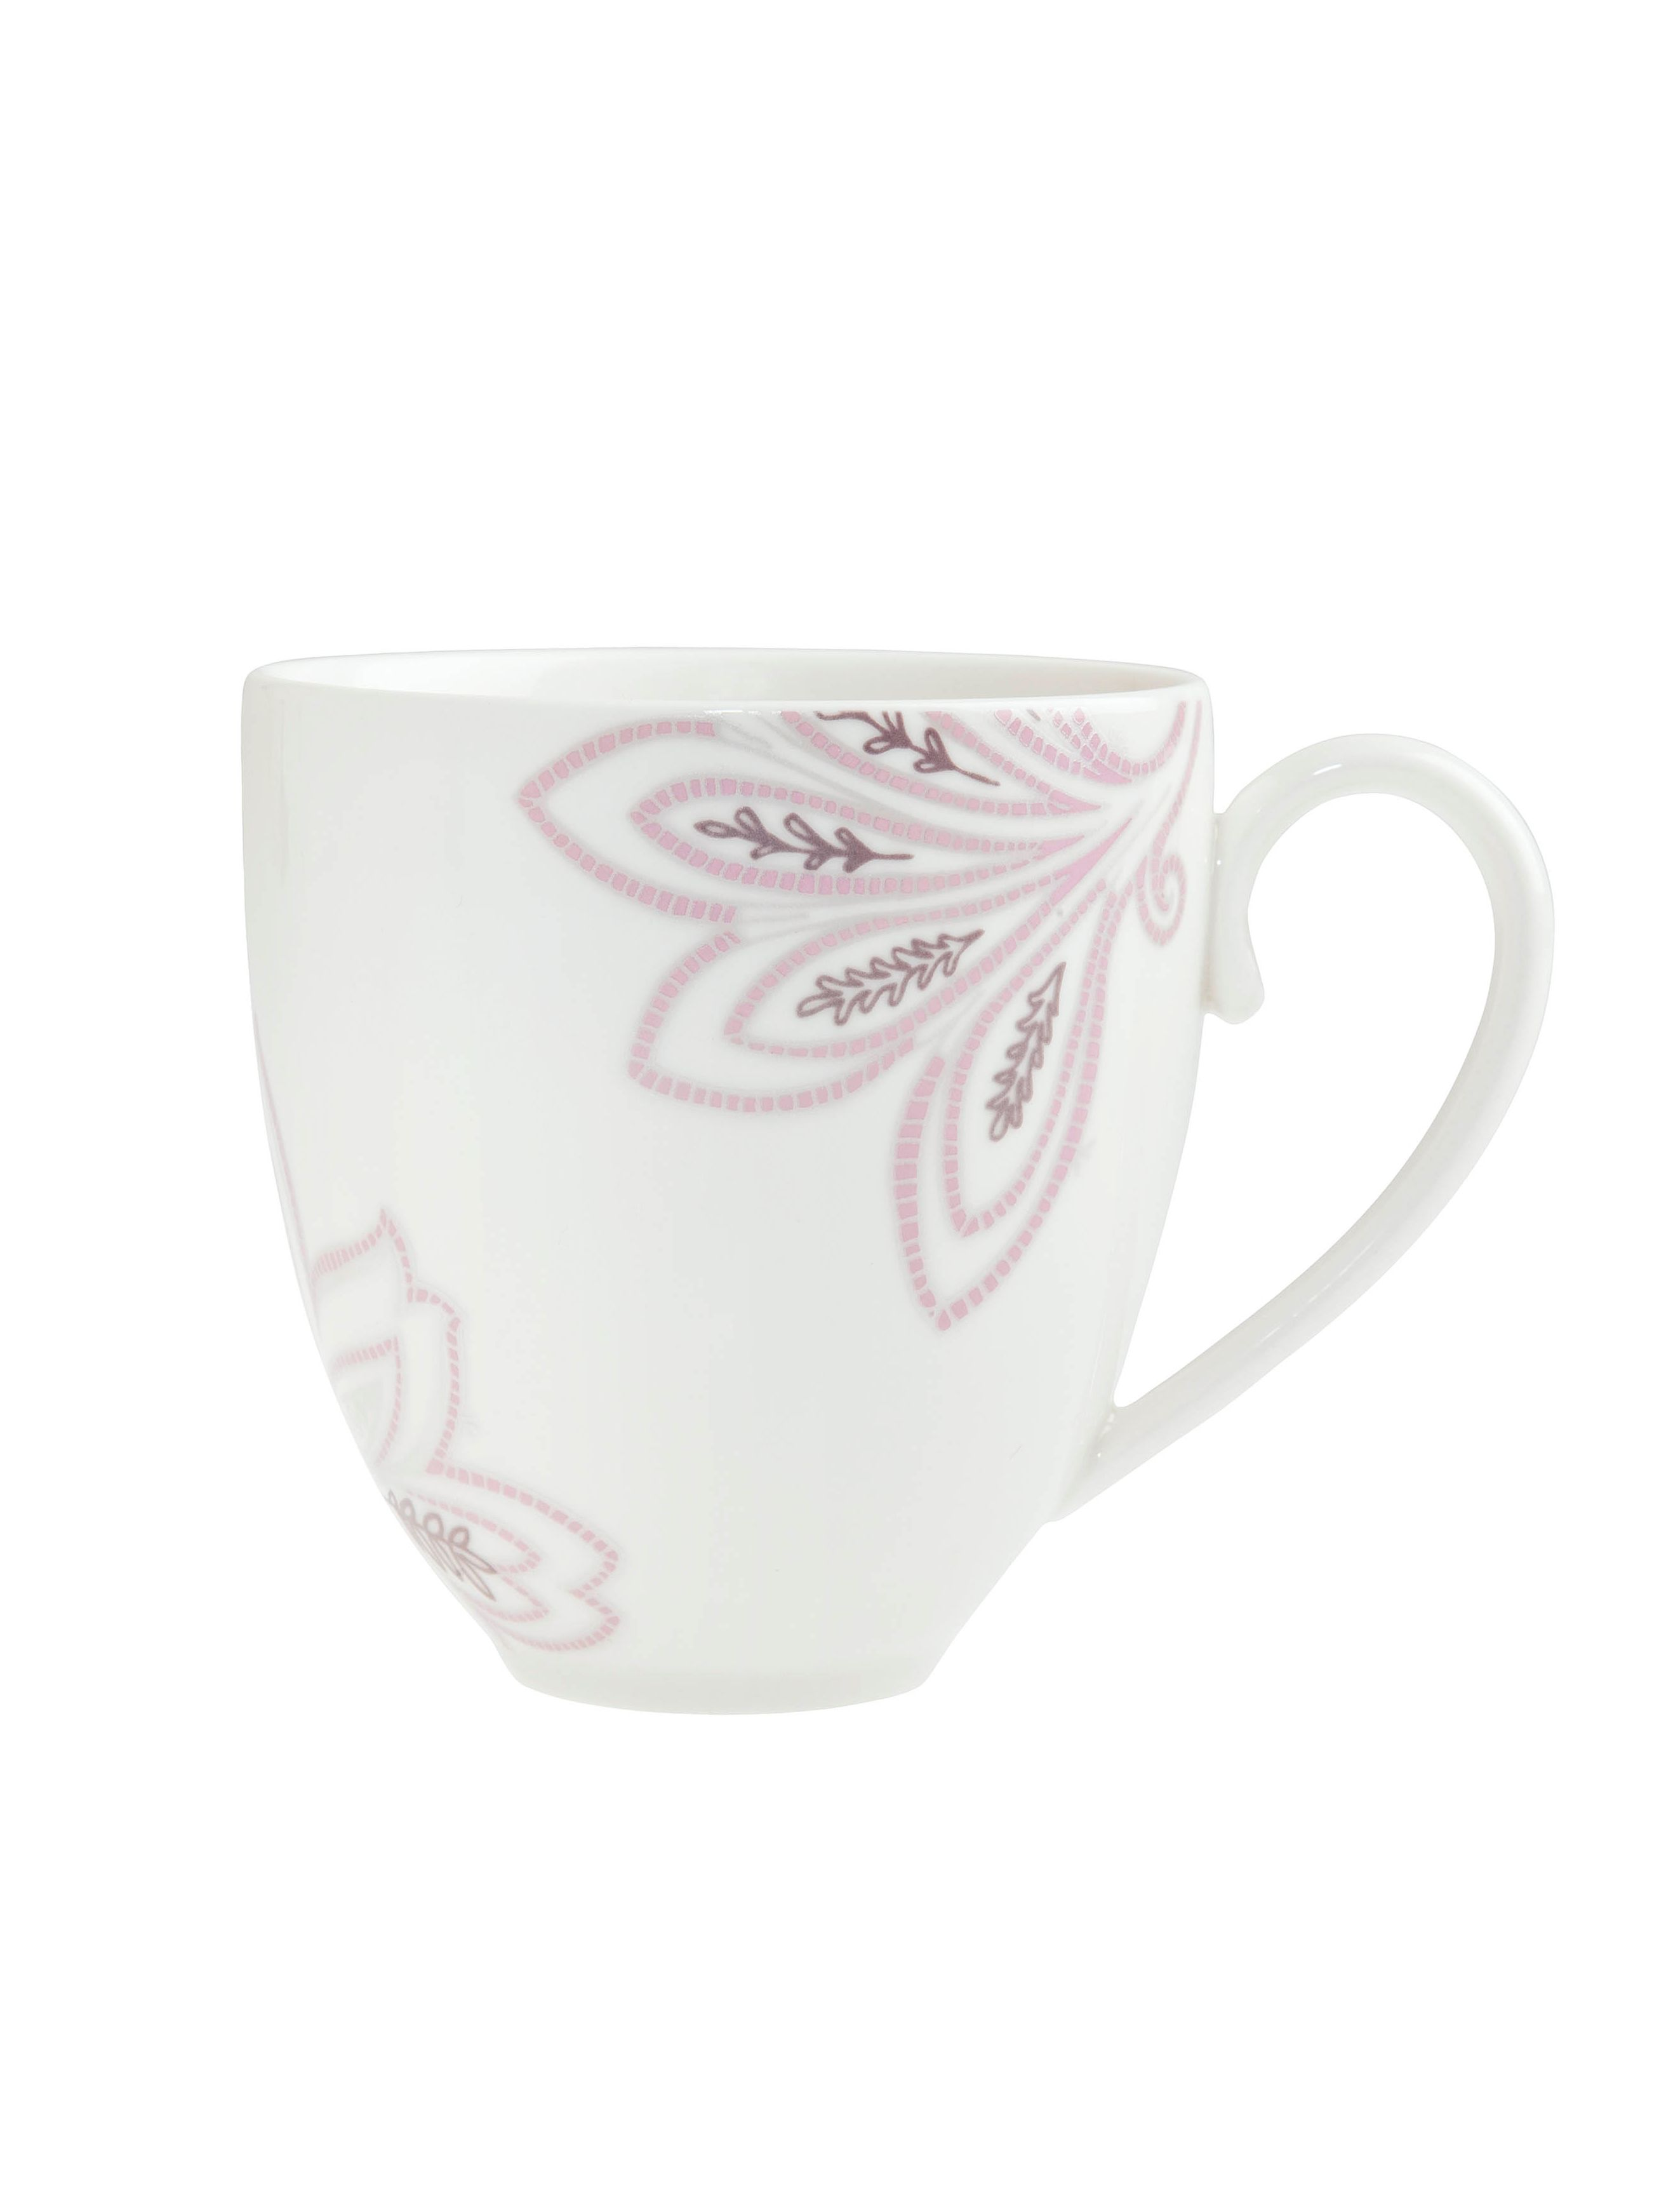 Chantilly large mug